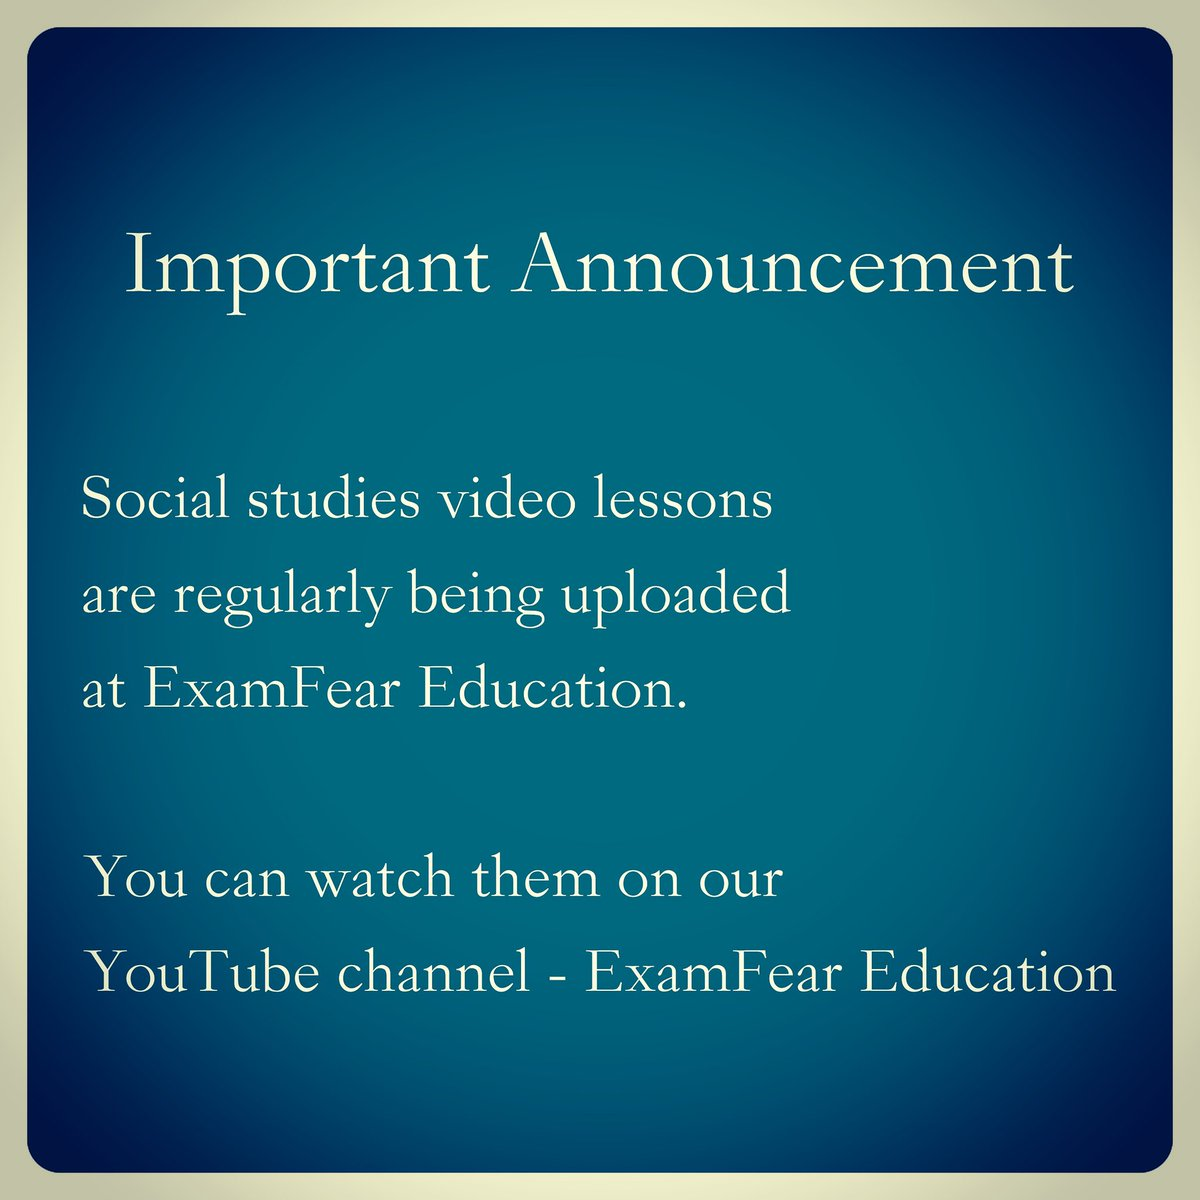 Examfear Education (@ExamfearVideos) | Twitter